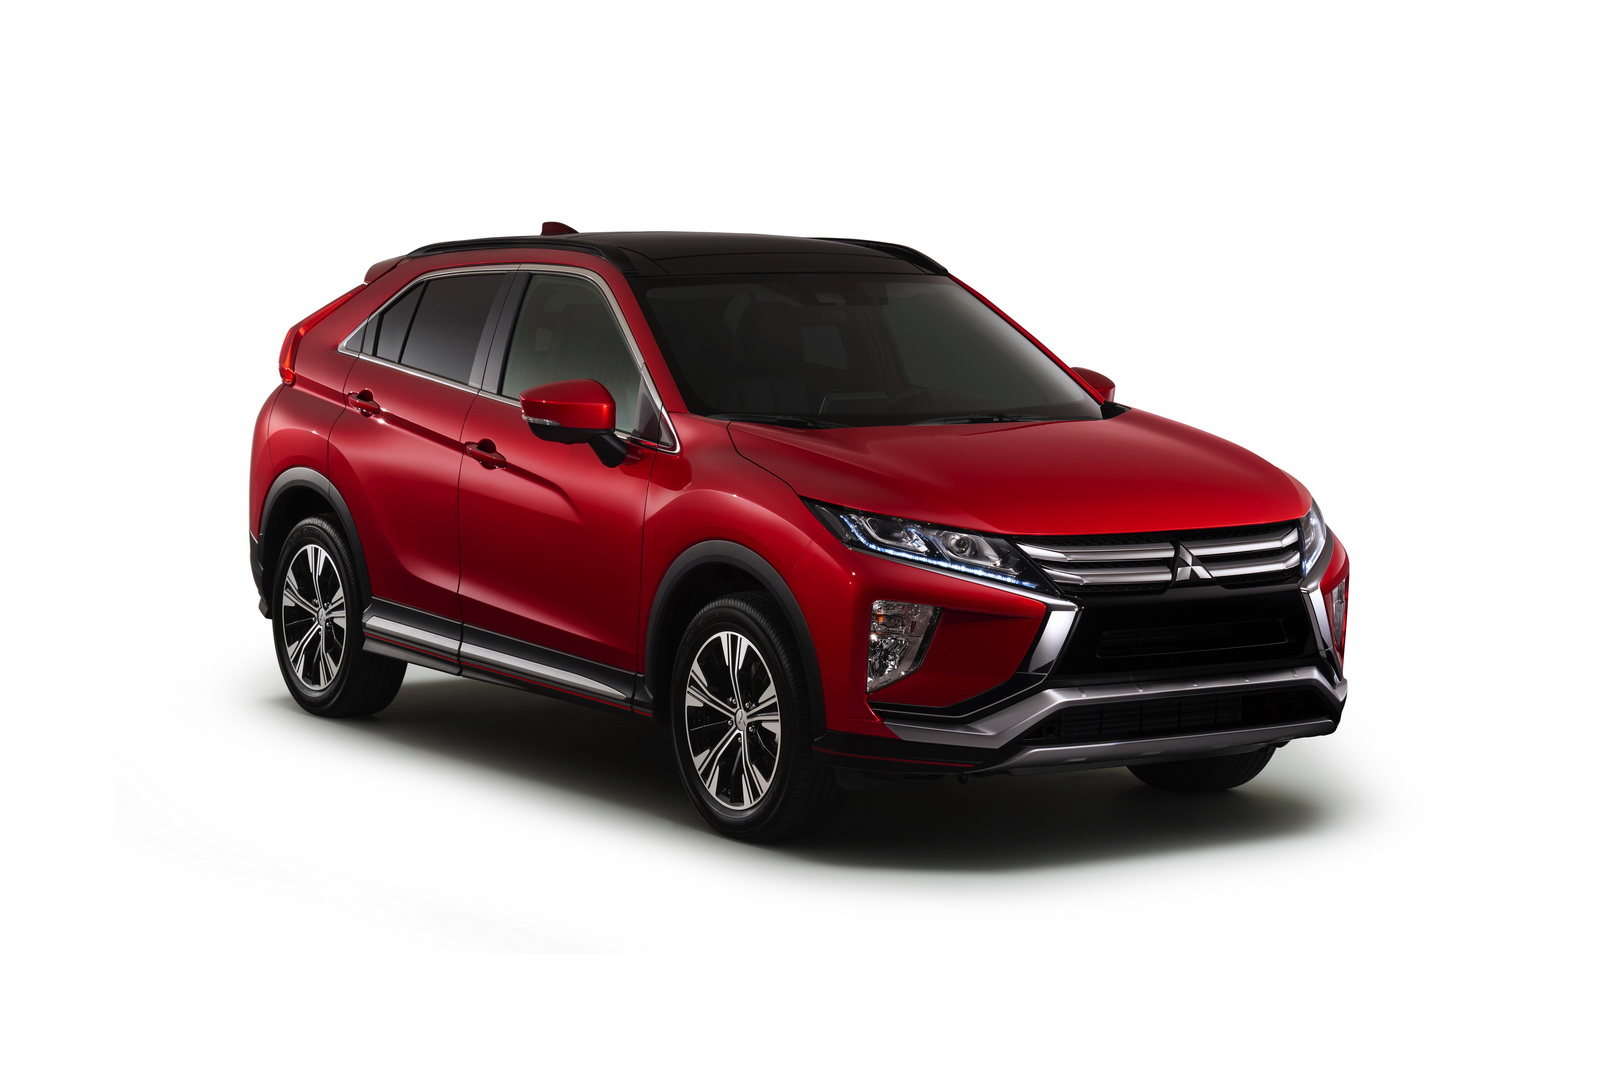 new mitsubishi eclipse cross suv india launch date expected price specifications interior. Black Bedroom Furniture Sets. Home Design Ideas